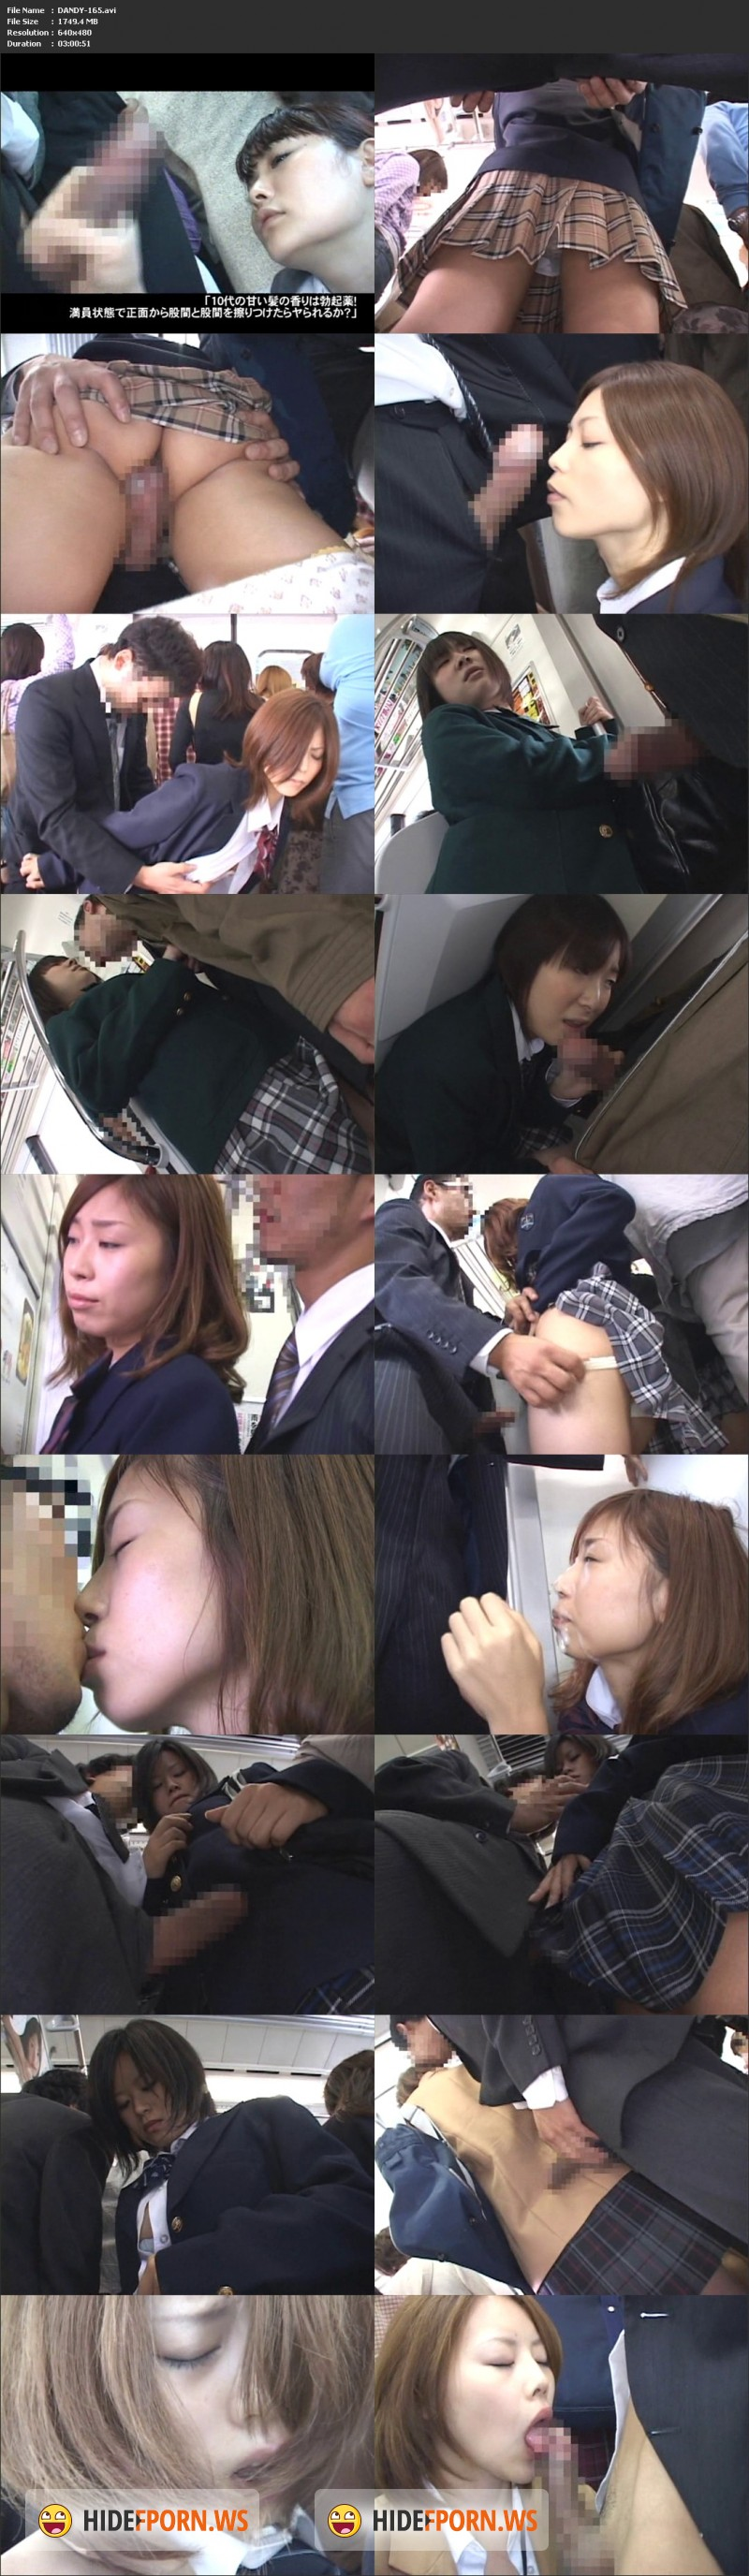 If only rubbed further crotch and groin and confronted the erection 0 Ji Po school girls in school train? [DVDRip]